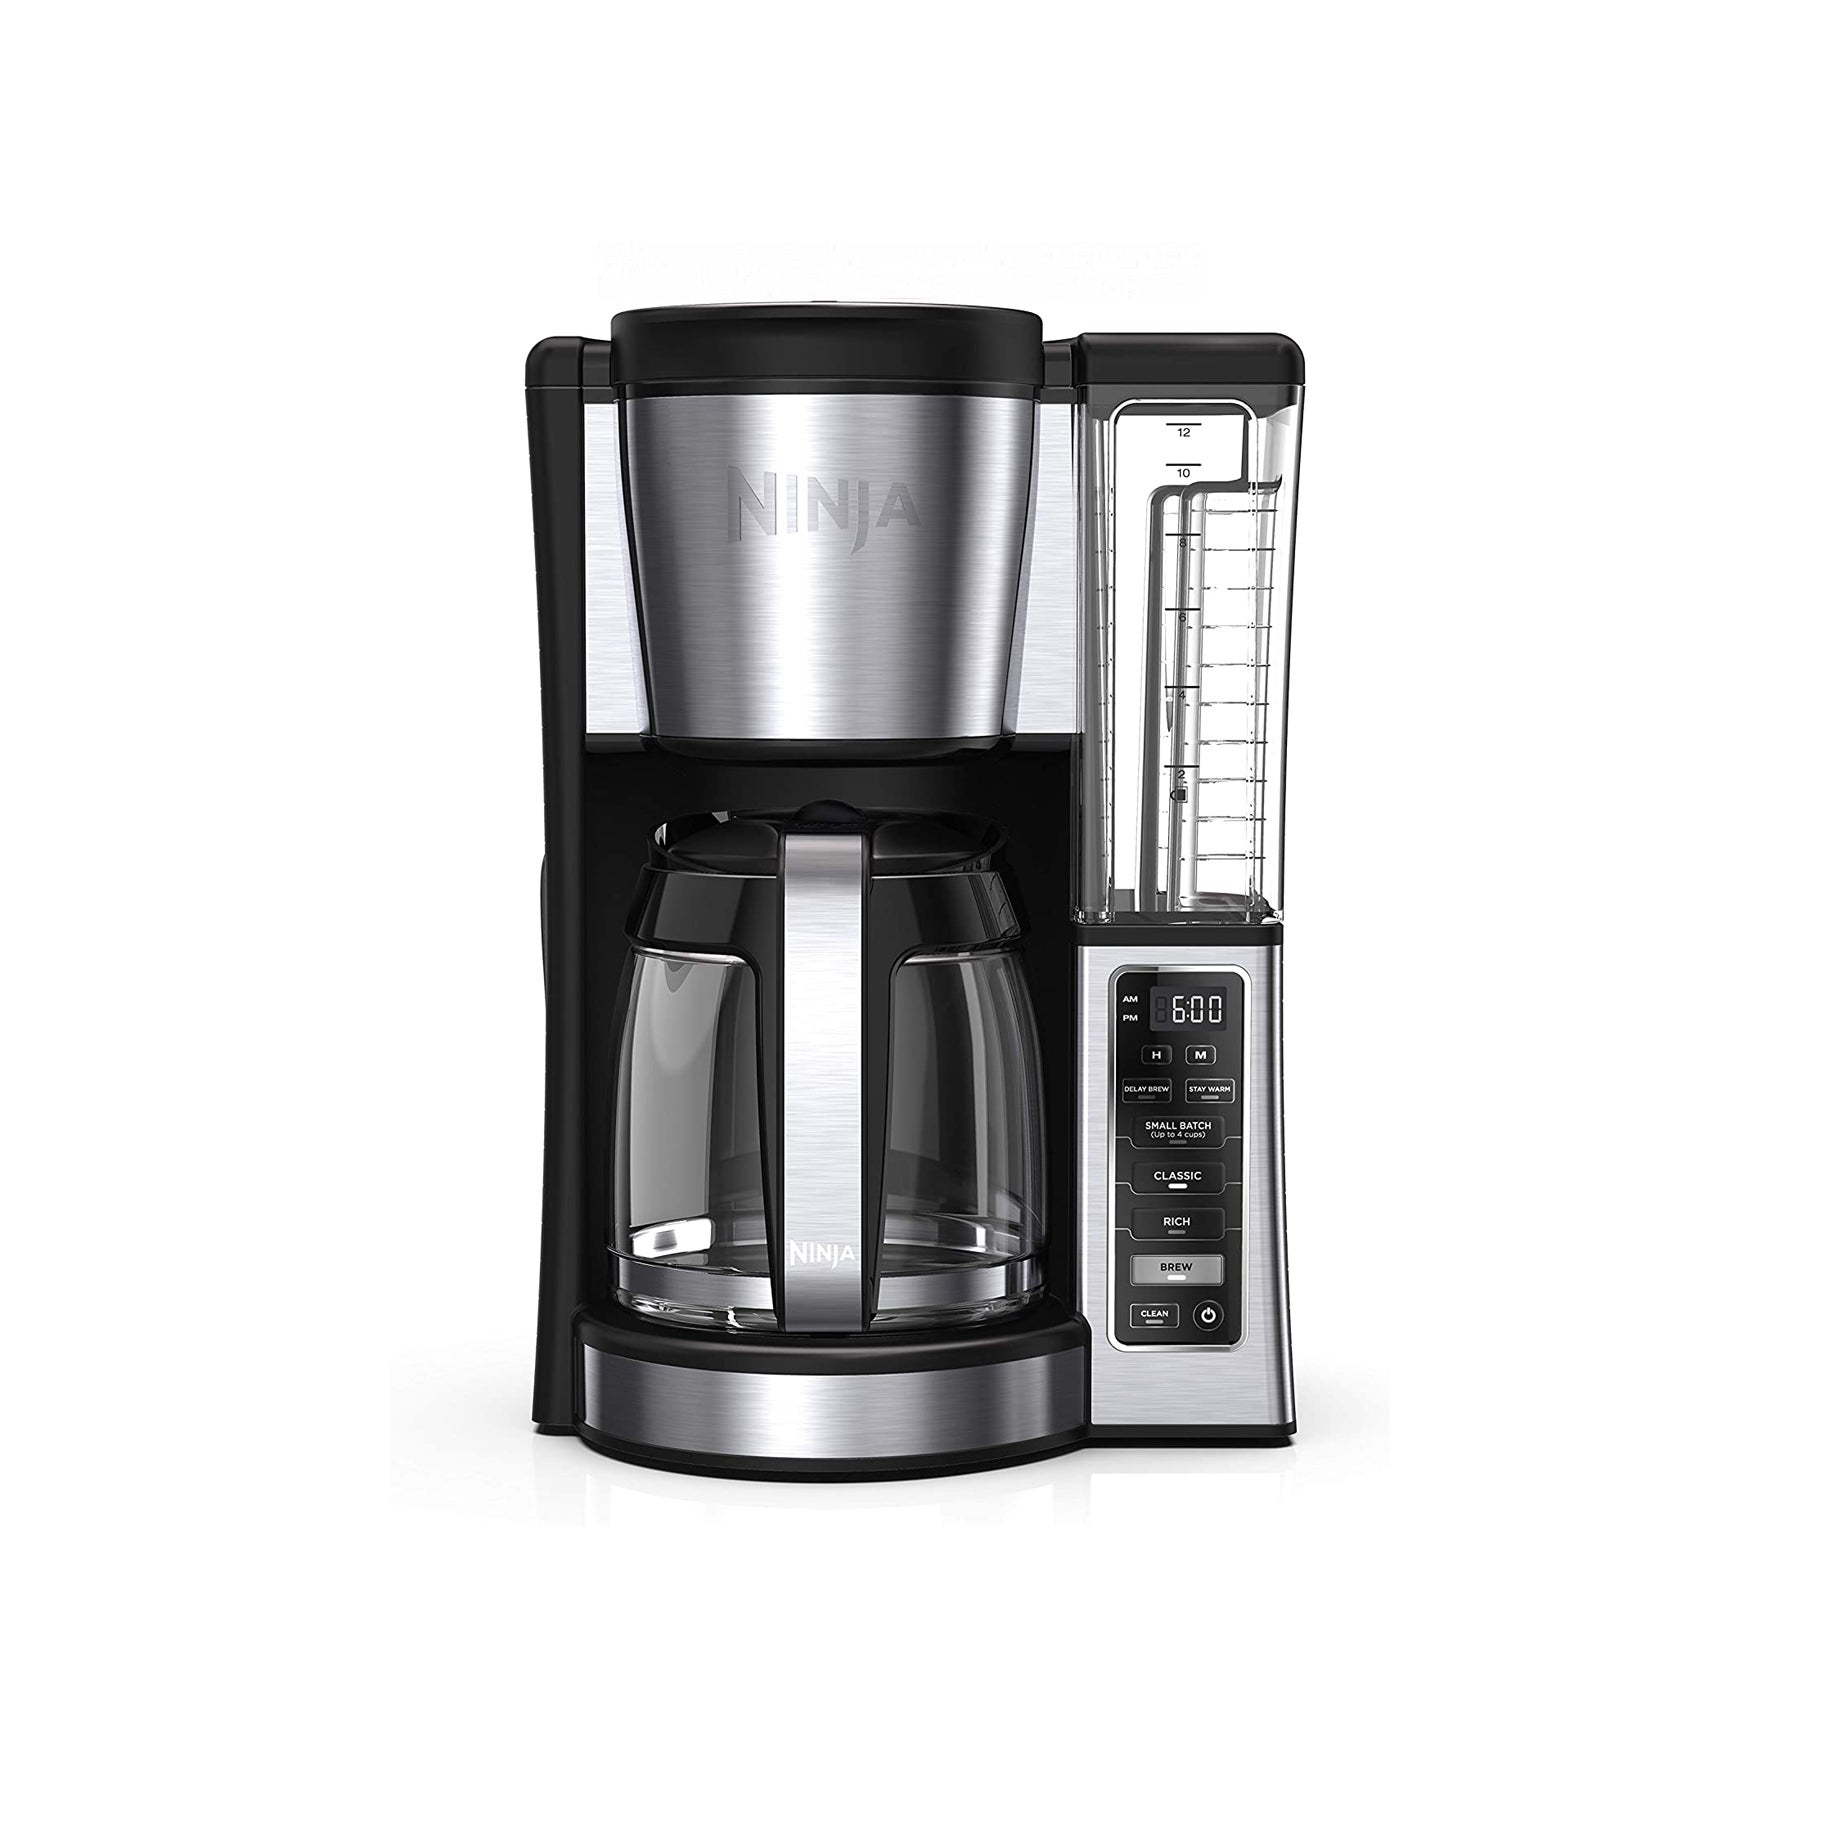 The Best Coffee Maker Option: Ninja Programmable Brewer with 12 Cup Carafe